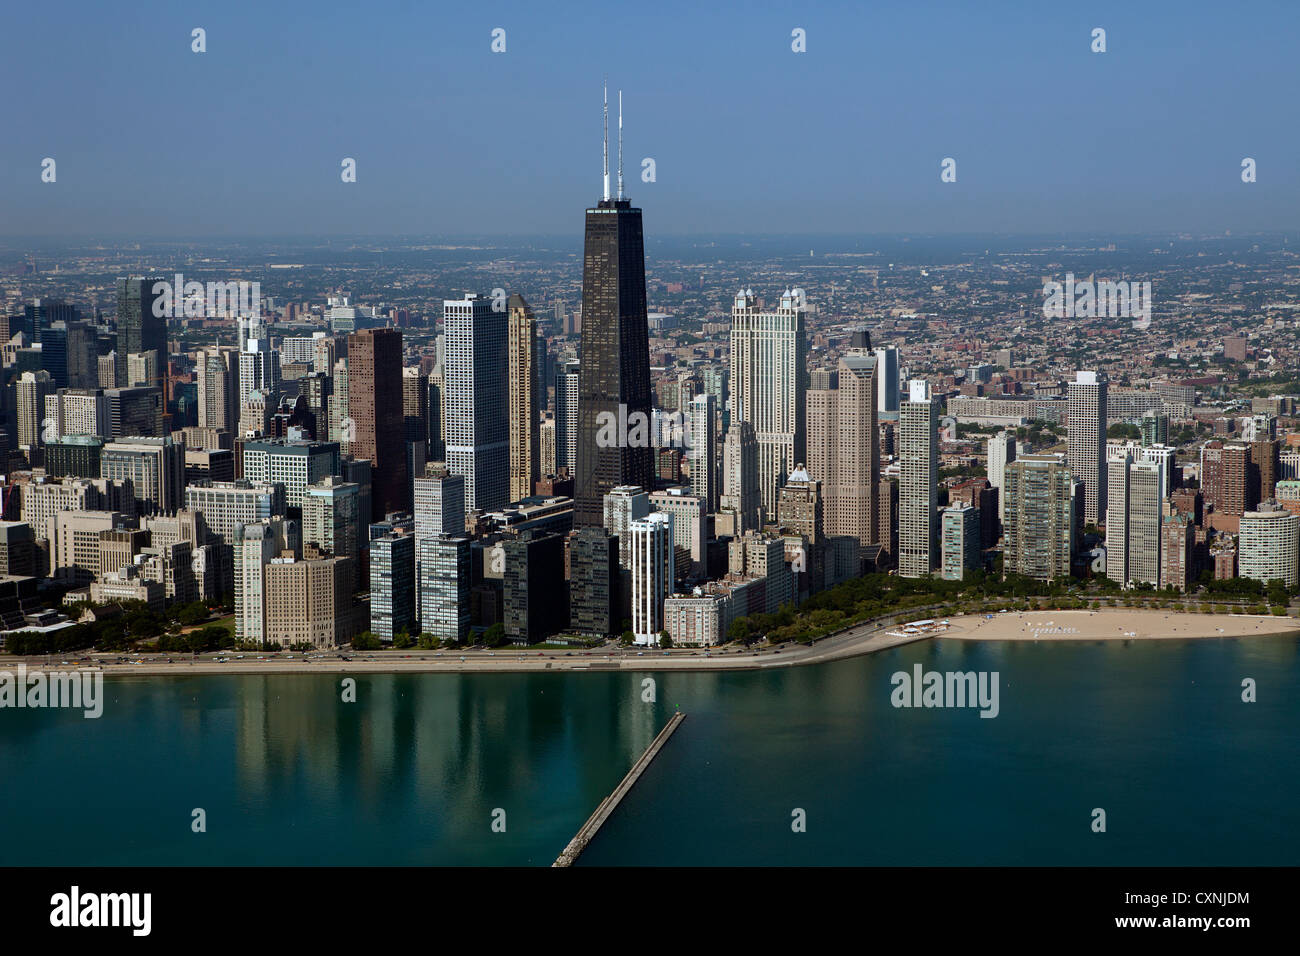 aerial photograph downtown Chicago, Illinois - Stock Image